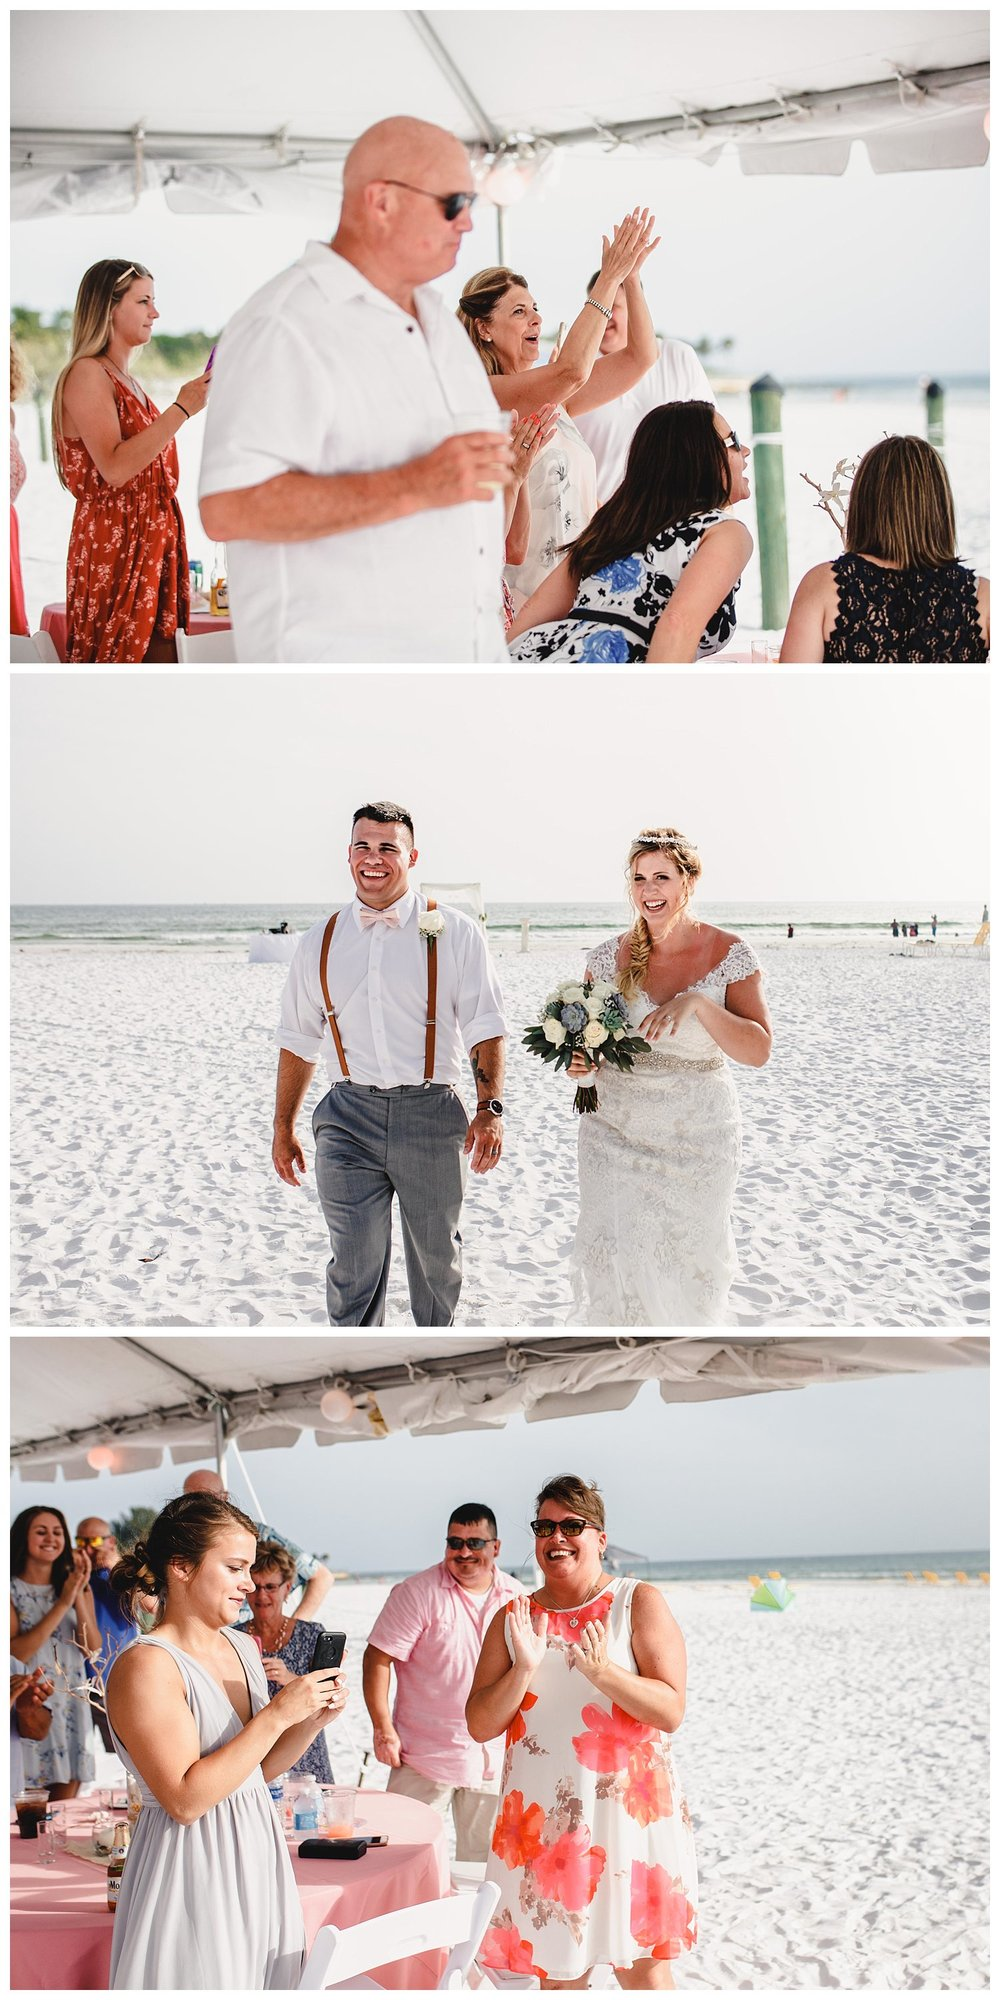 Kelsey_Diane_Photography_Destination_Wedding_Sarasota_Florida_Beach_Wedding_Alex_Austin_0662.jpg